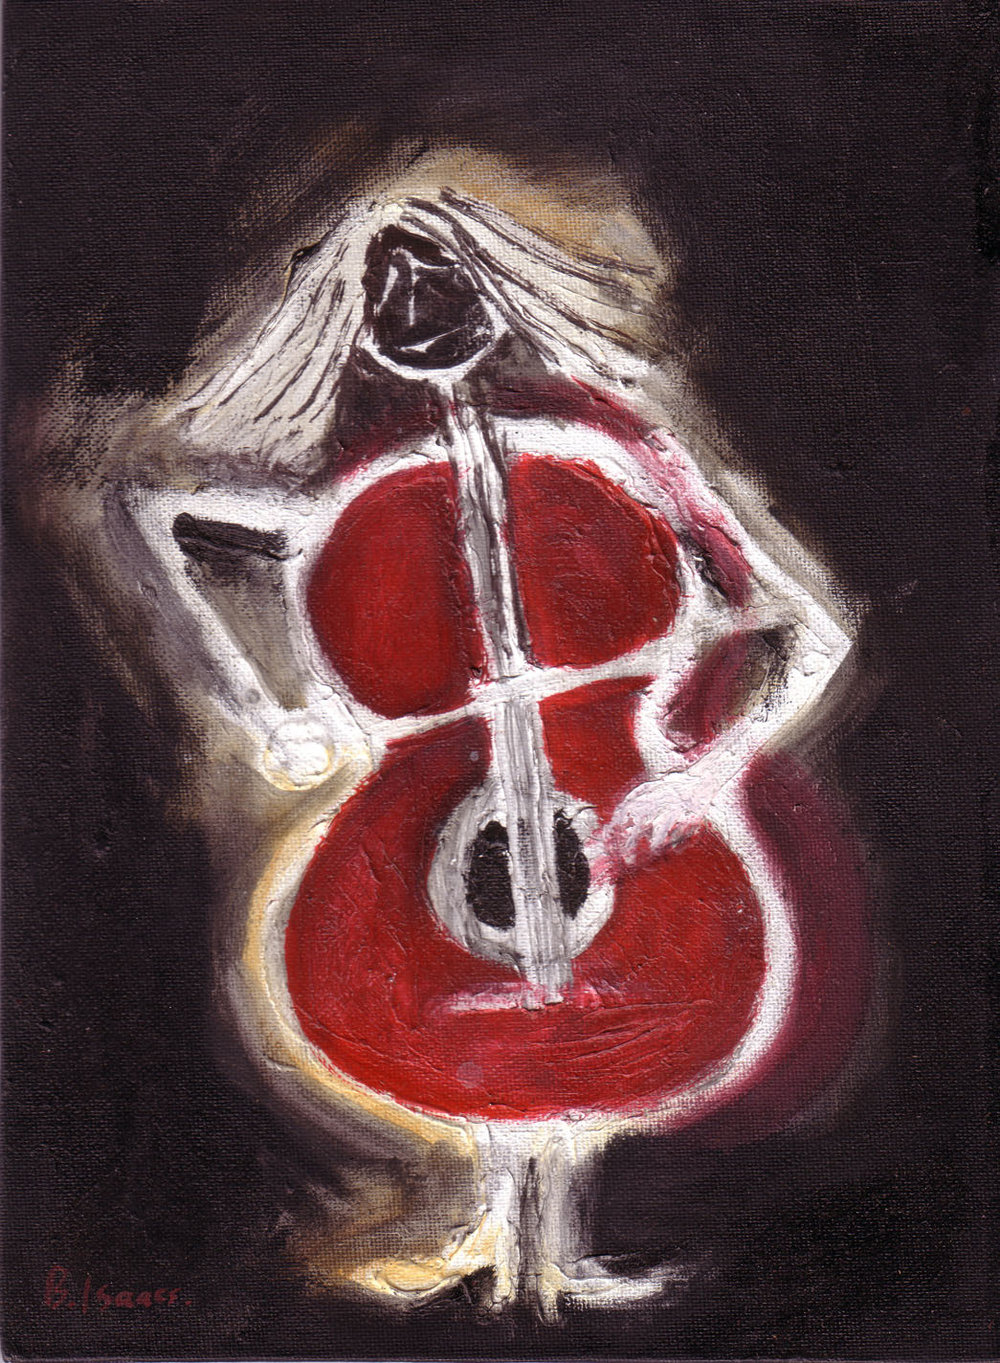 I AM A CELLO Oil on Canvass Board |18 x 24 cm | 2008 Buy Framed £260.00